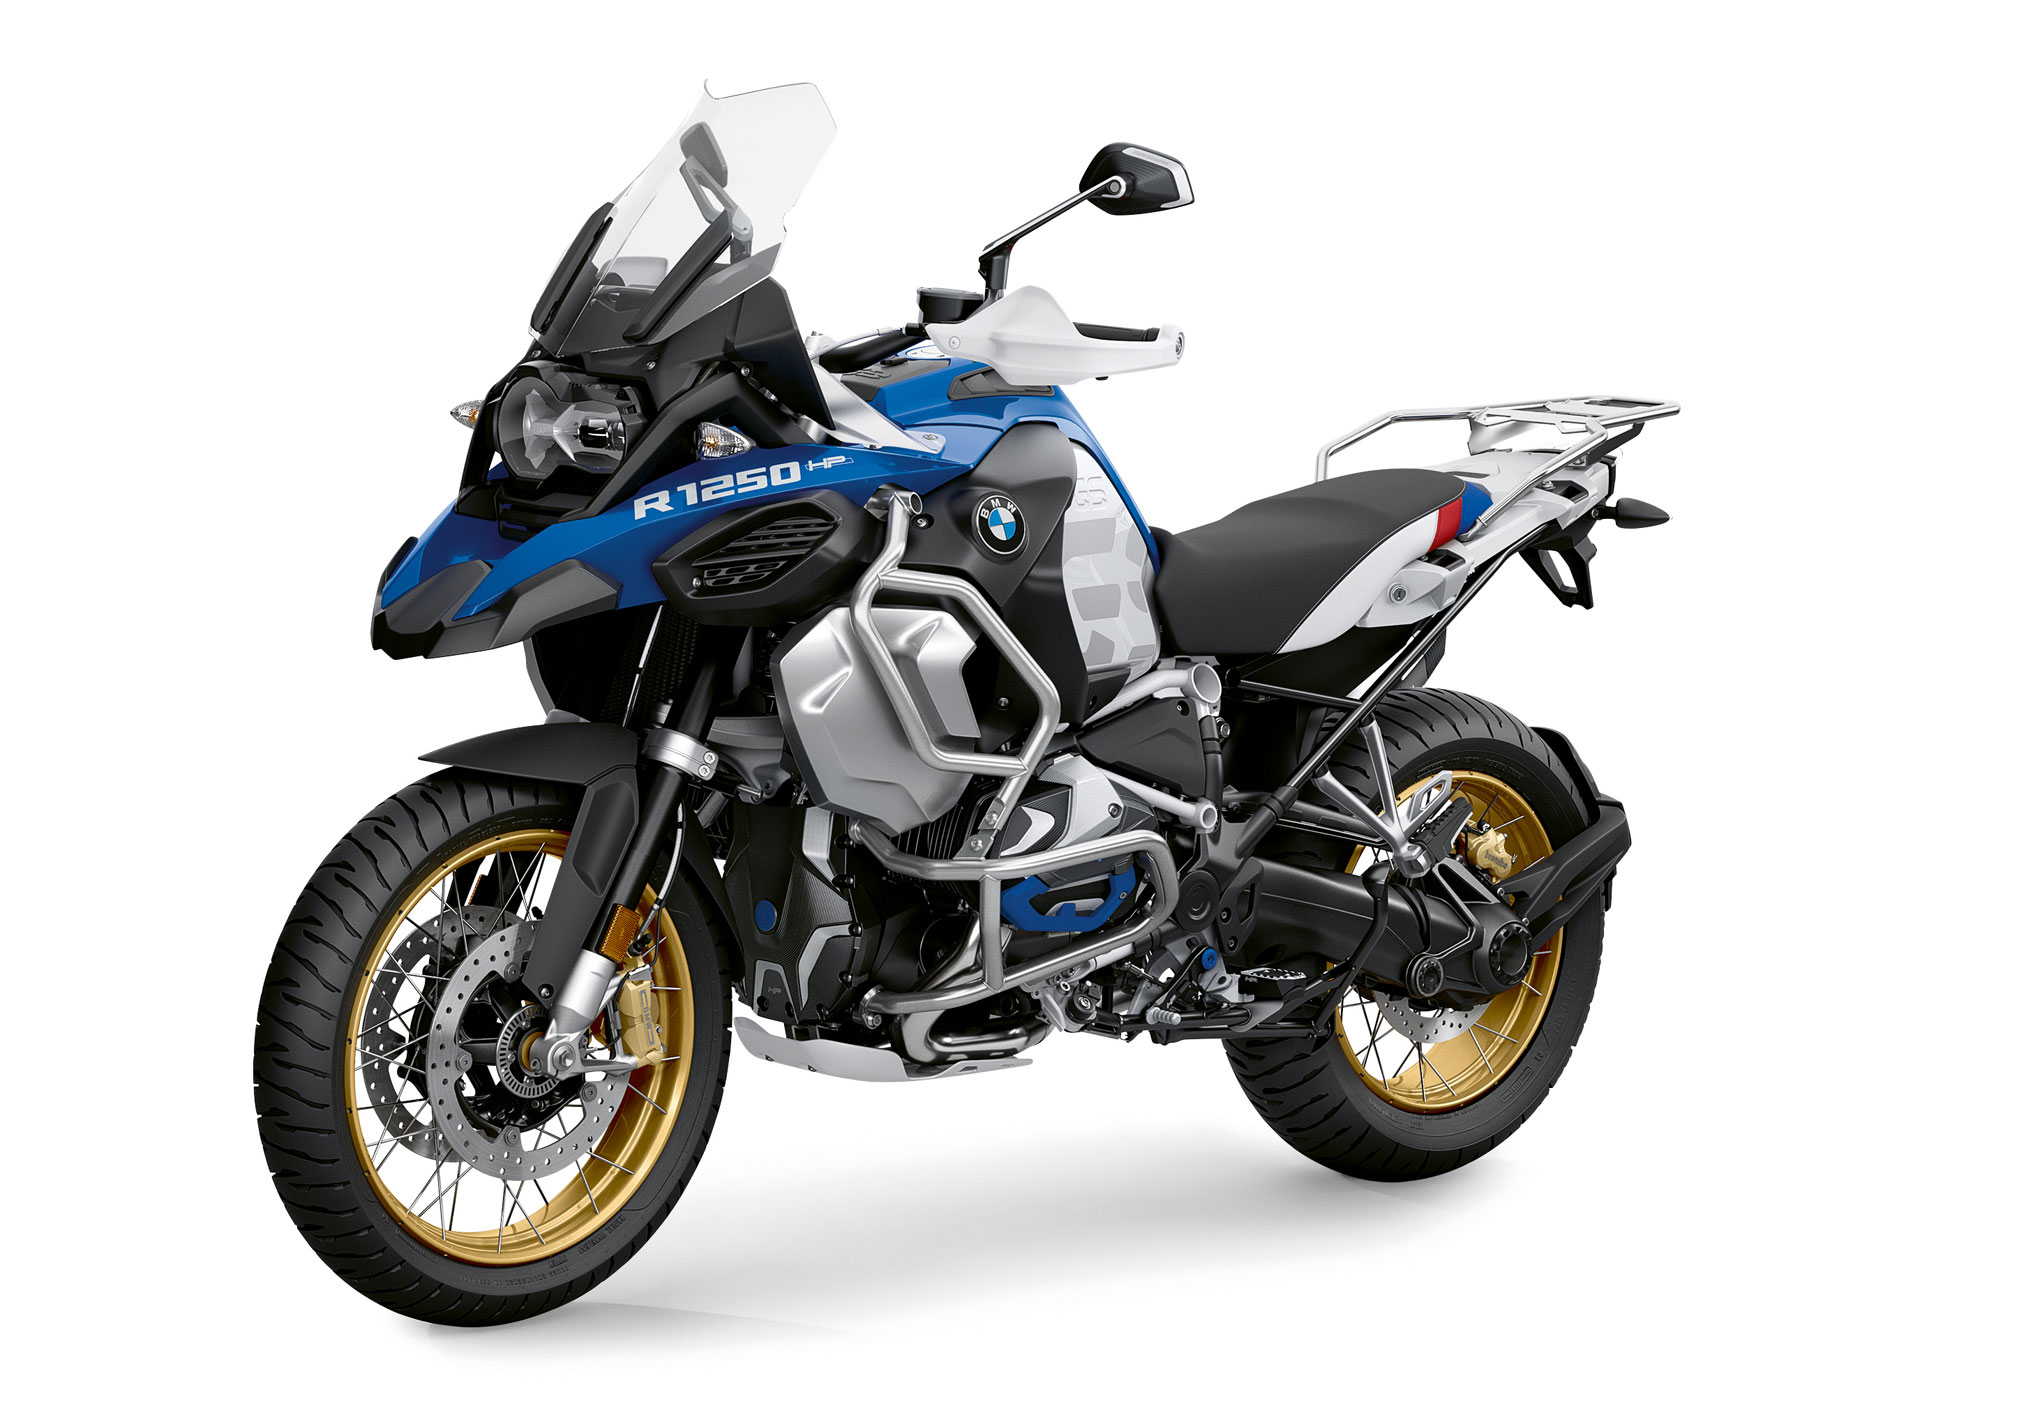 2019 bmw r1250gs adventure guide • total motorcycle